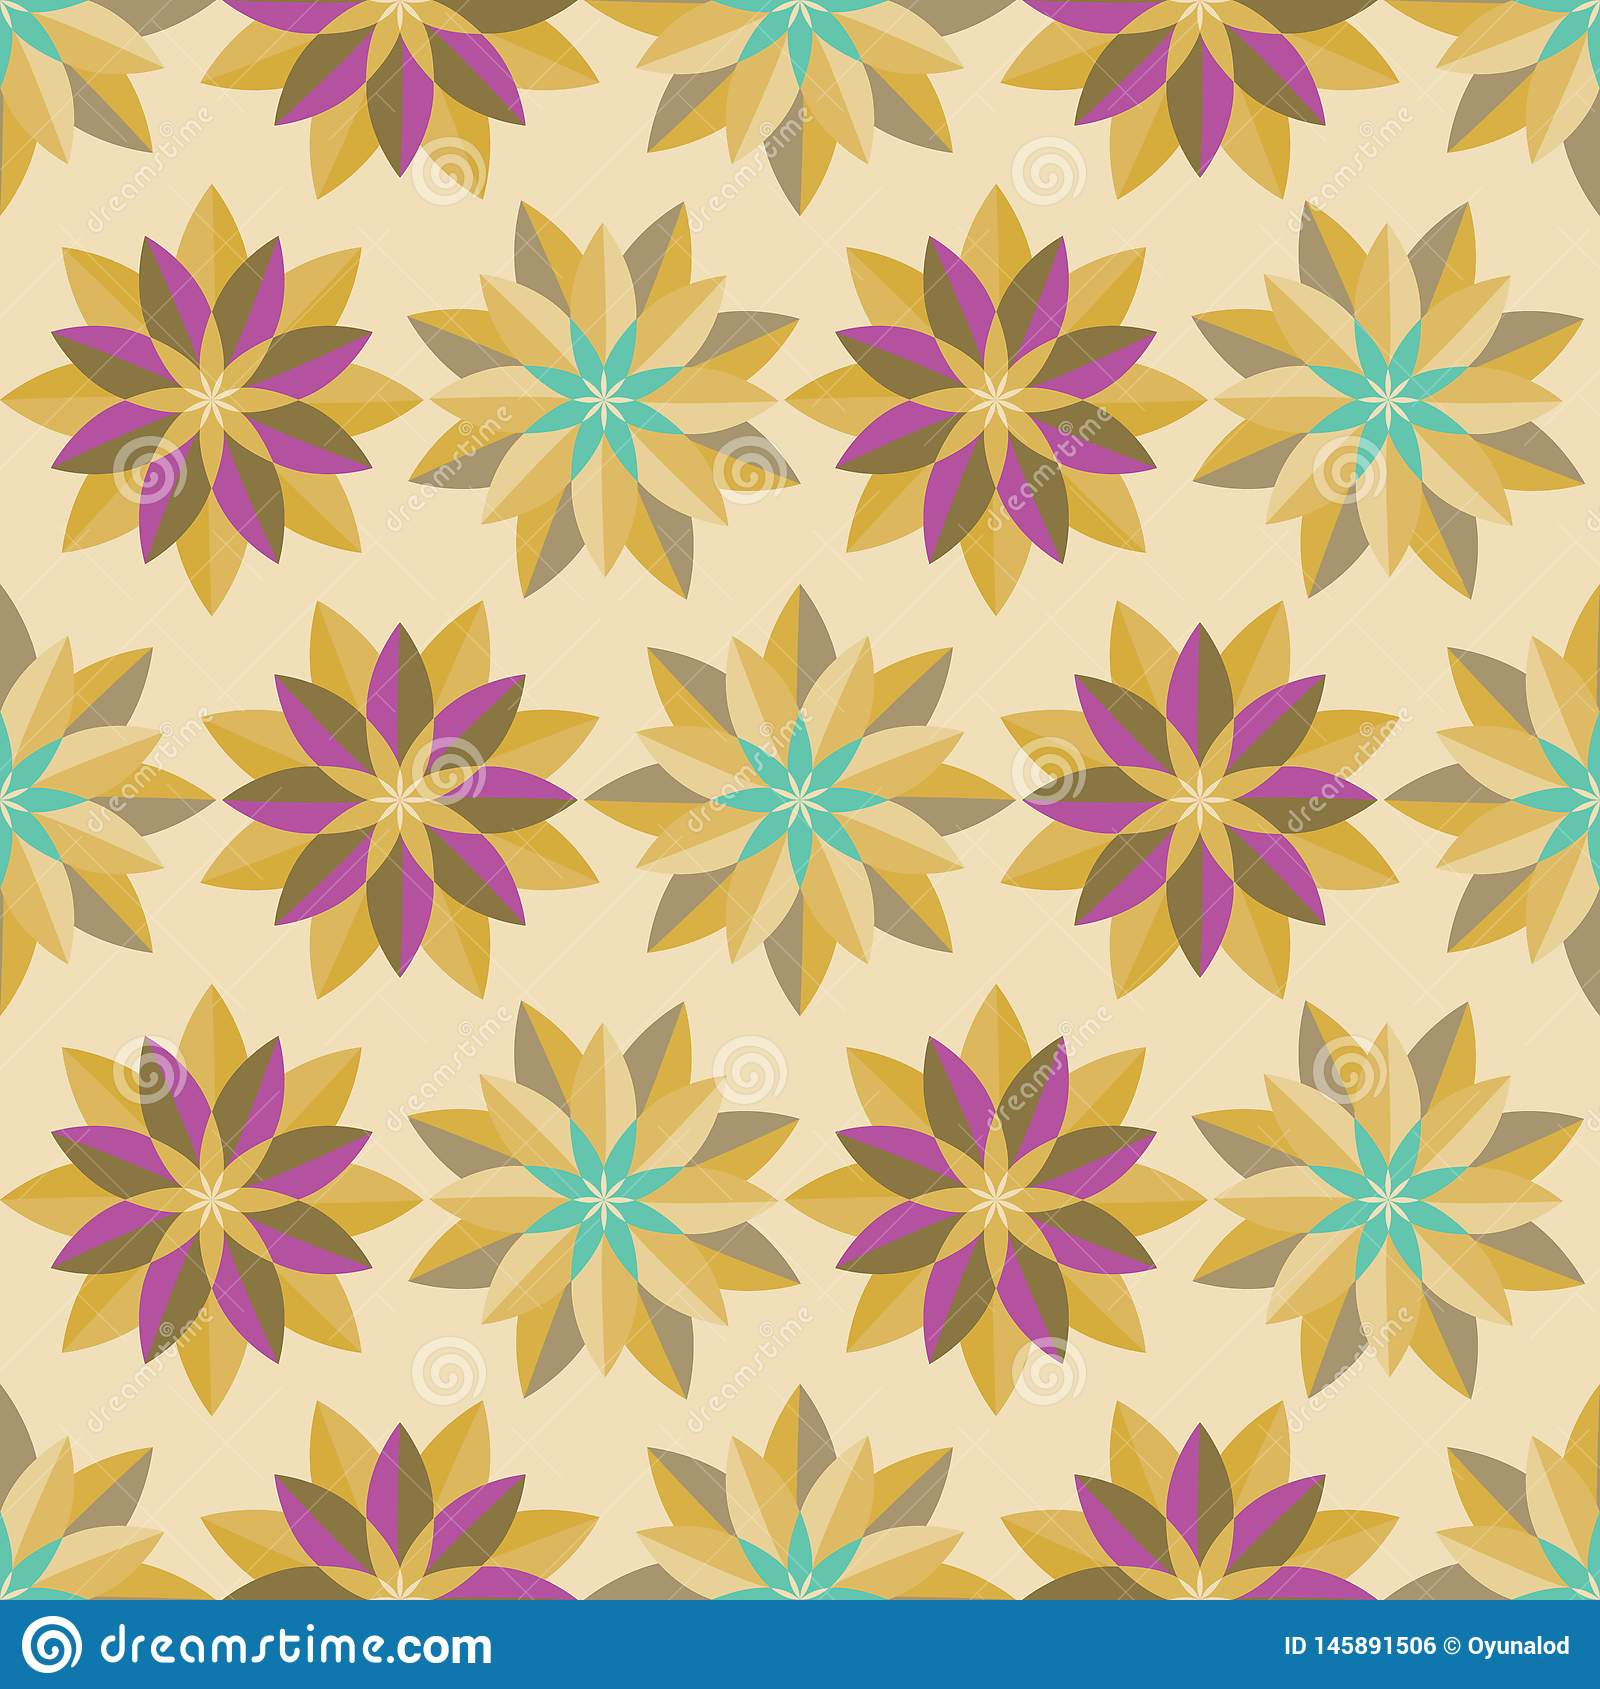 Geometric vector illustration. Paper cut art vector illustration with flowers. Seamless repeat pattern with graphic yellow, purple, olive and aqua ornaments royalty free stock image